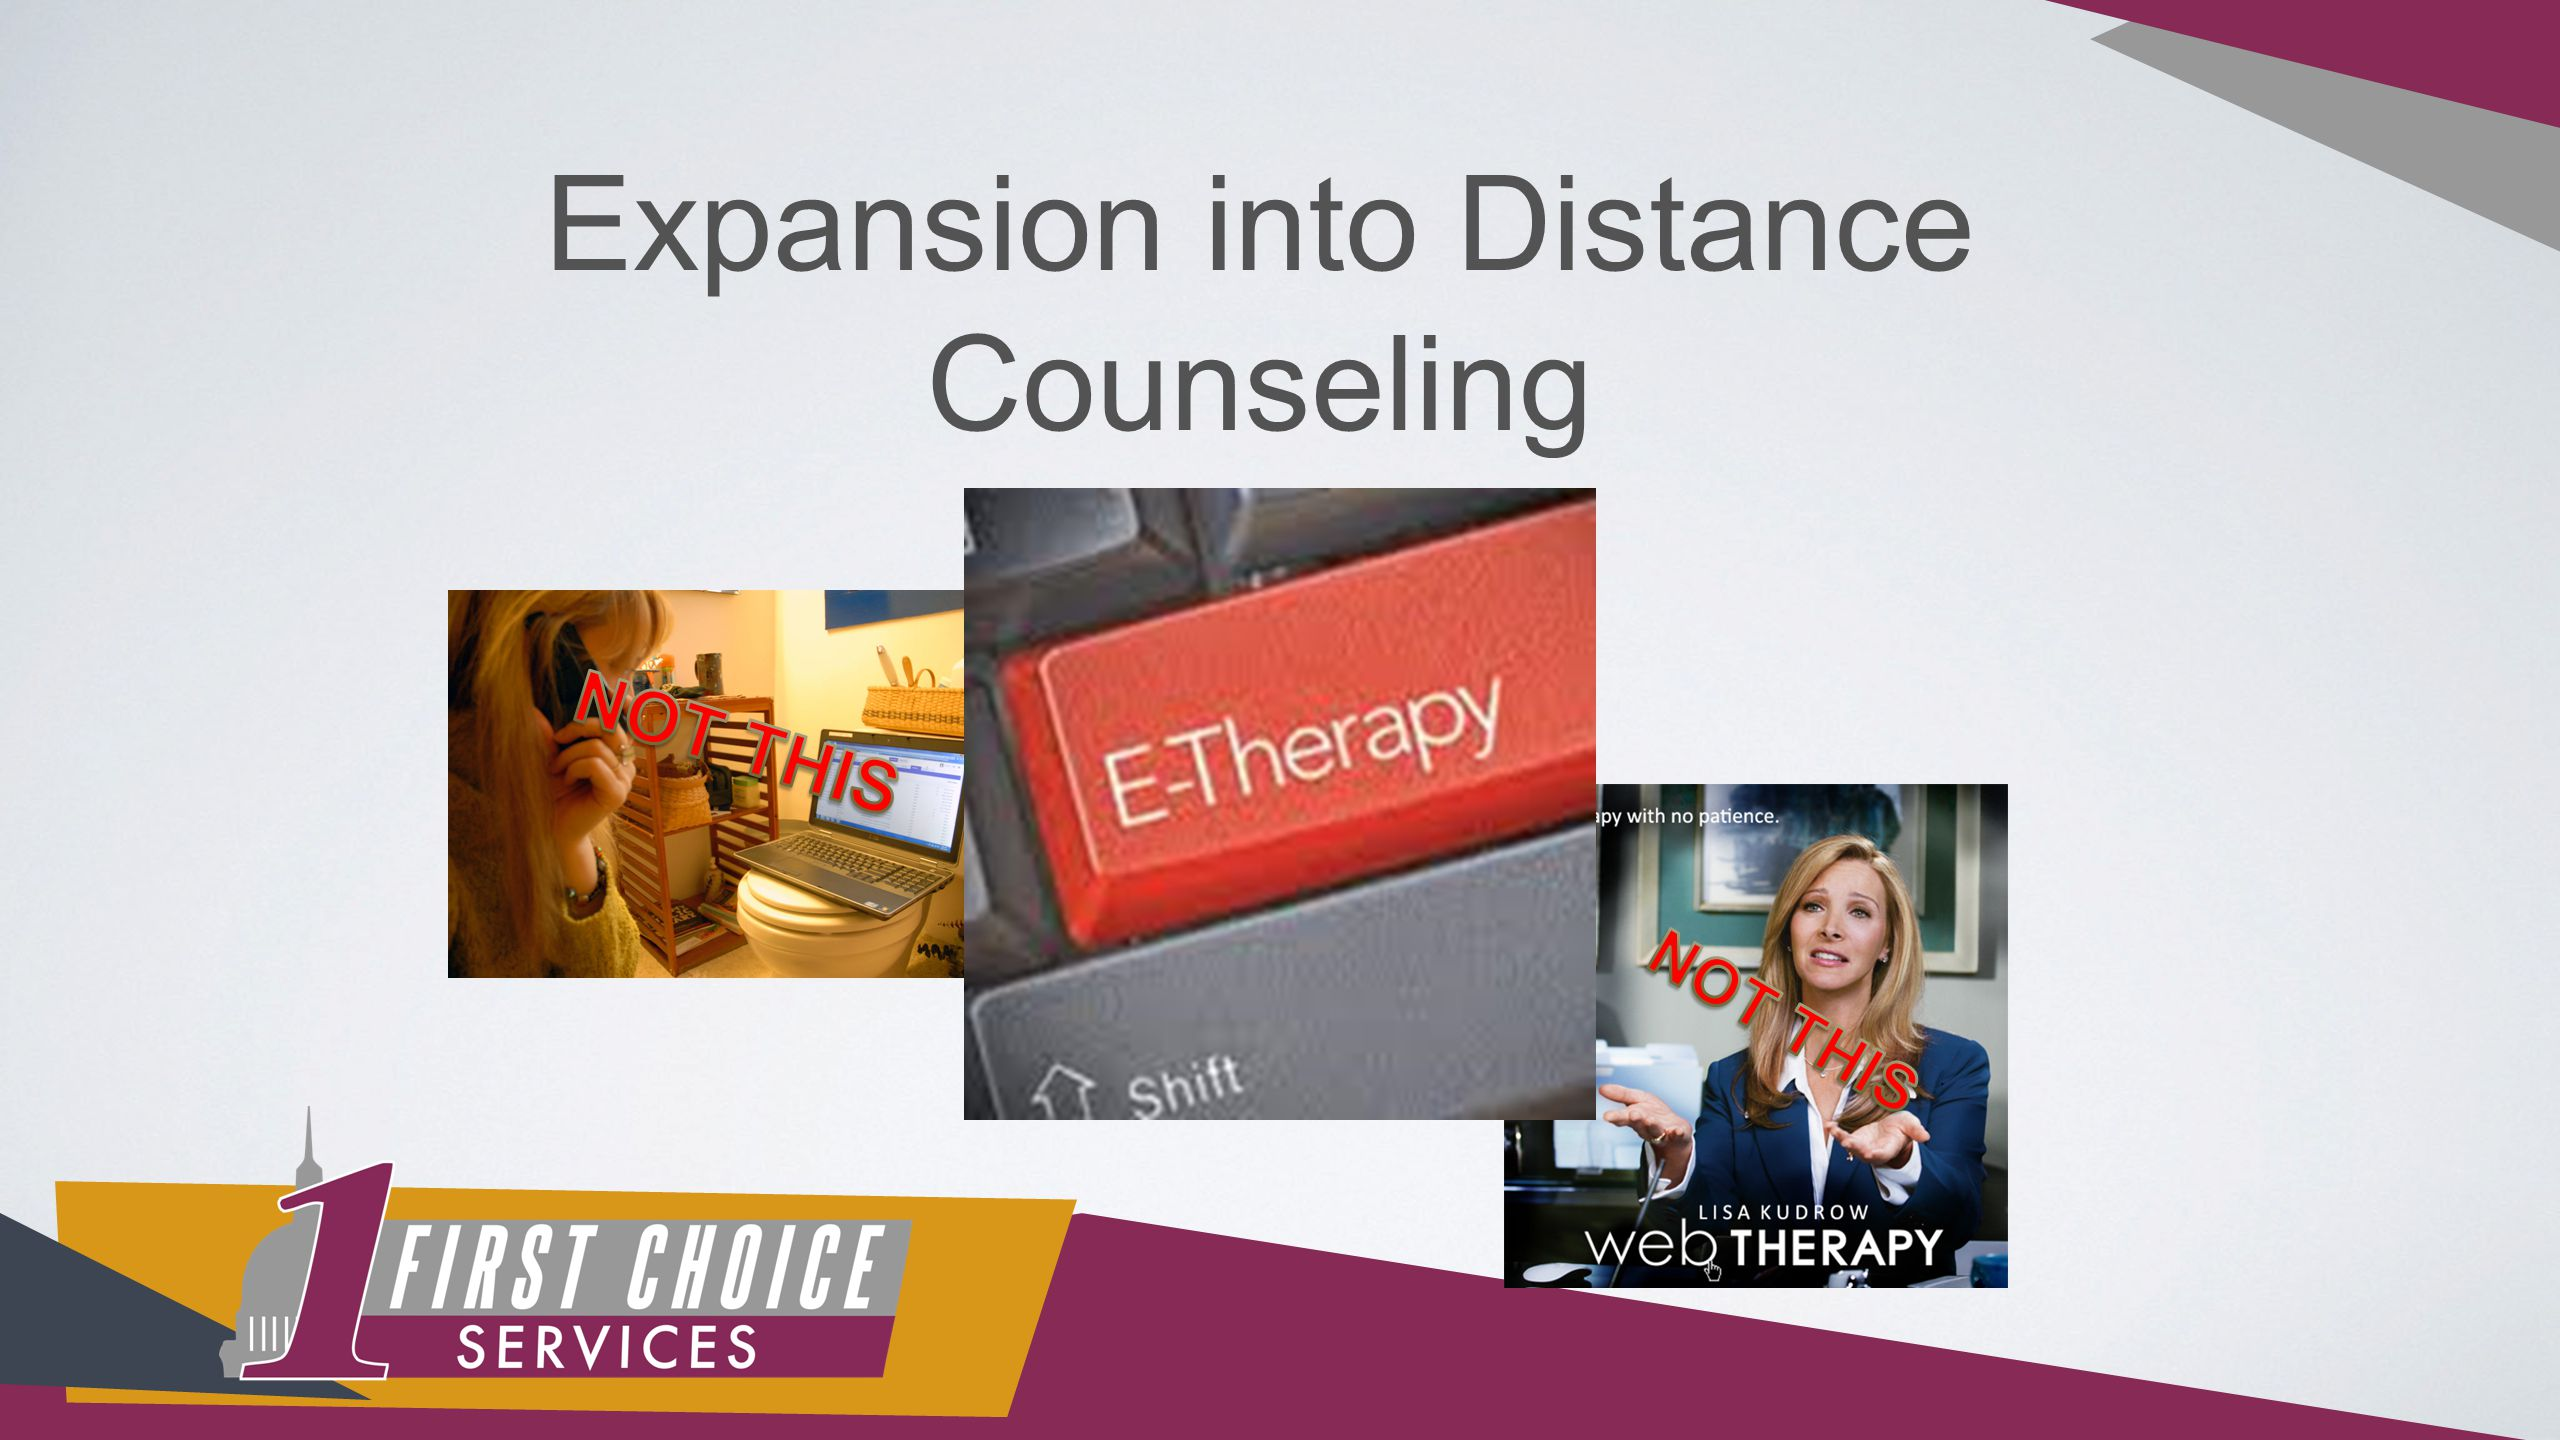 Expansion into Distance Counseling